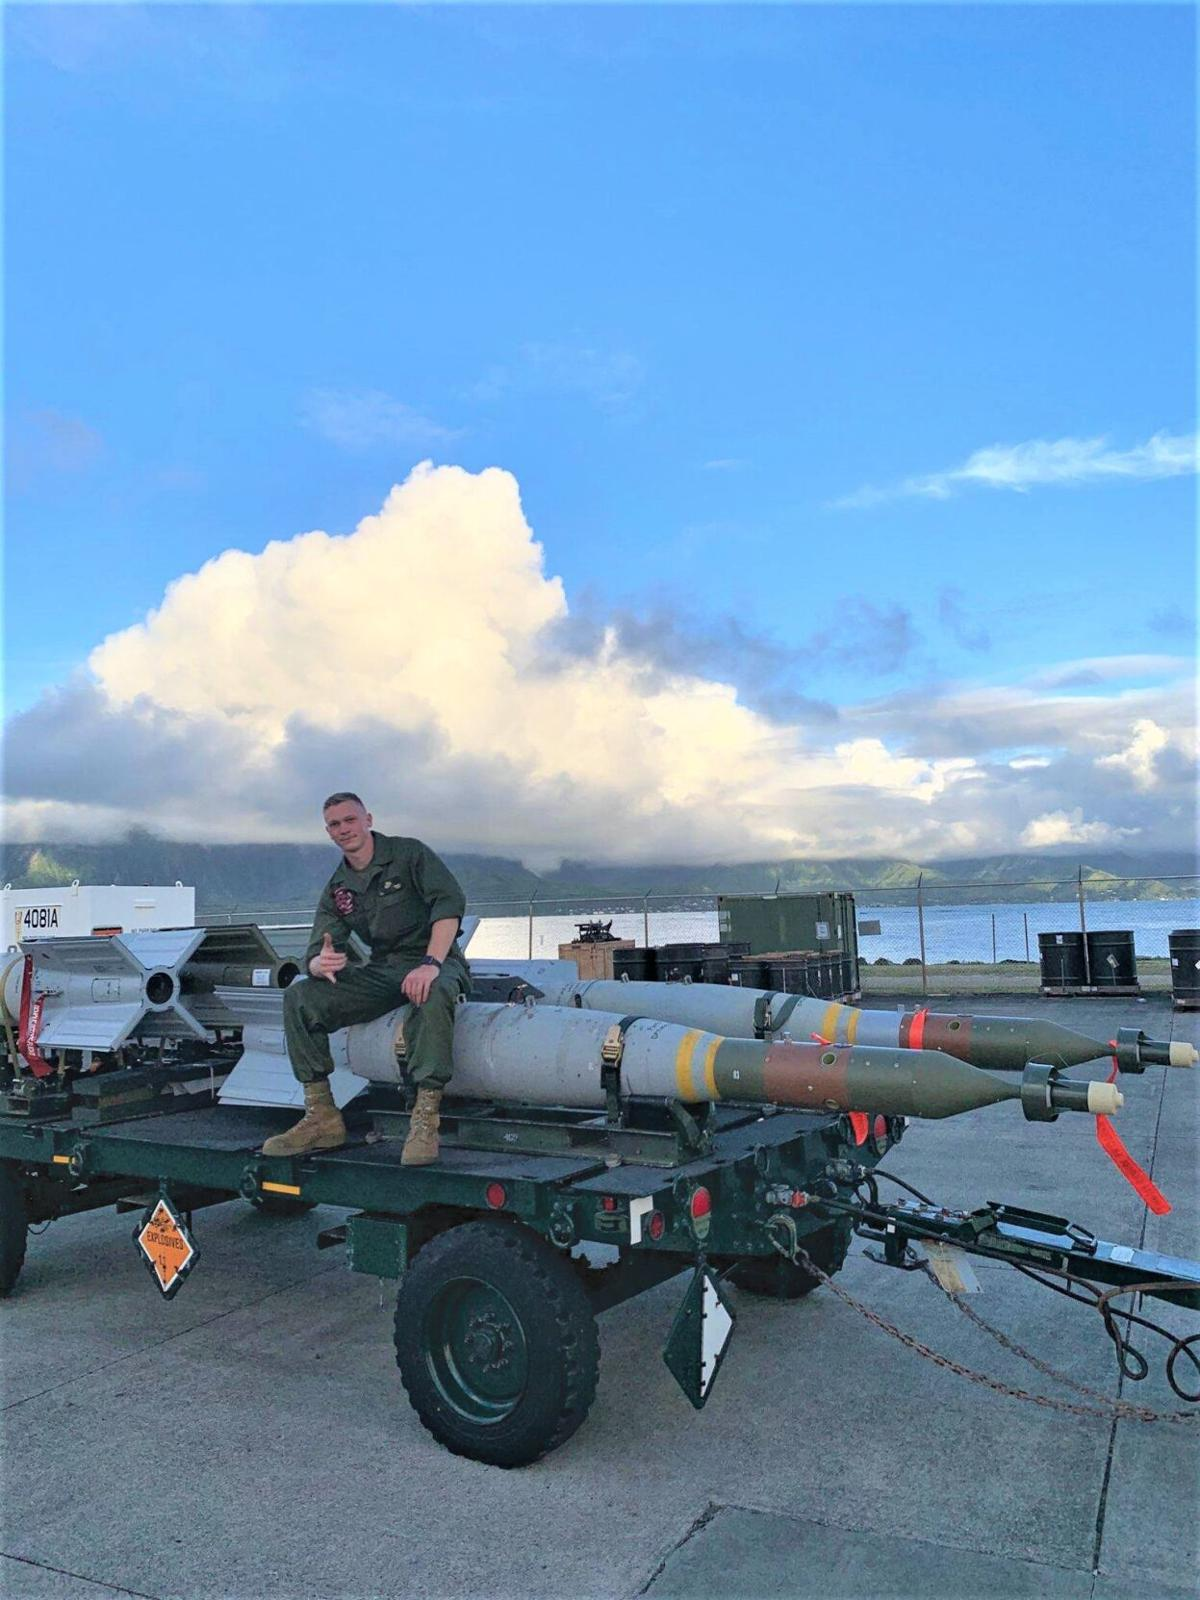 Ian, missiles Hawaii edit.jpg